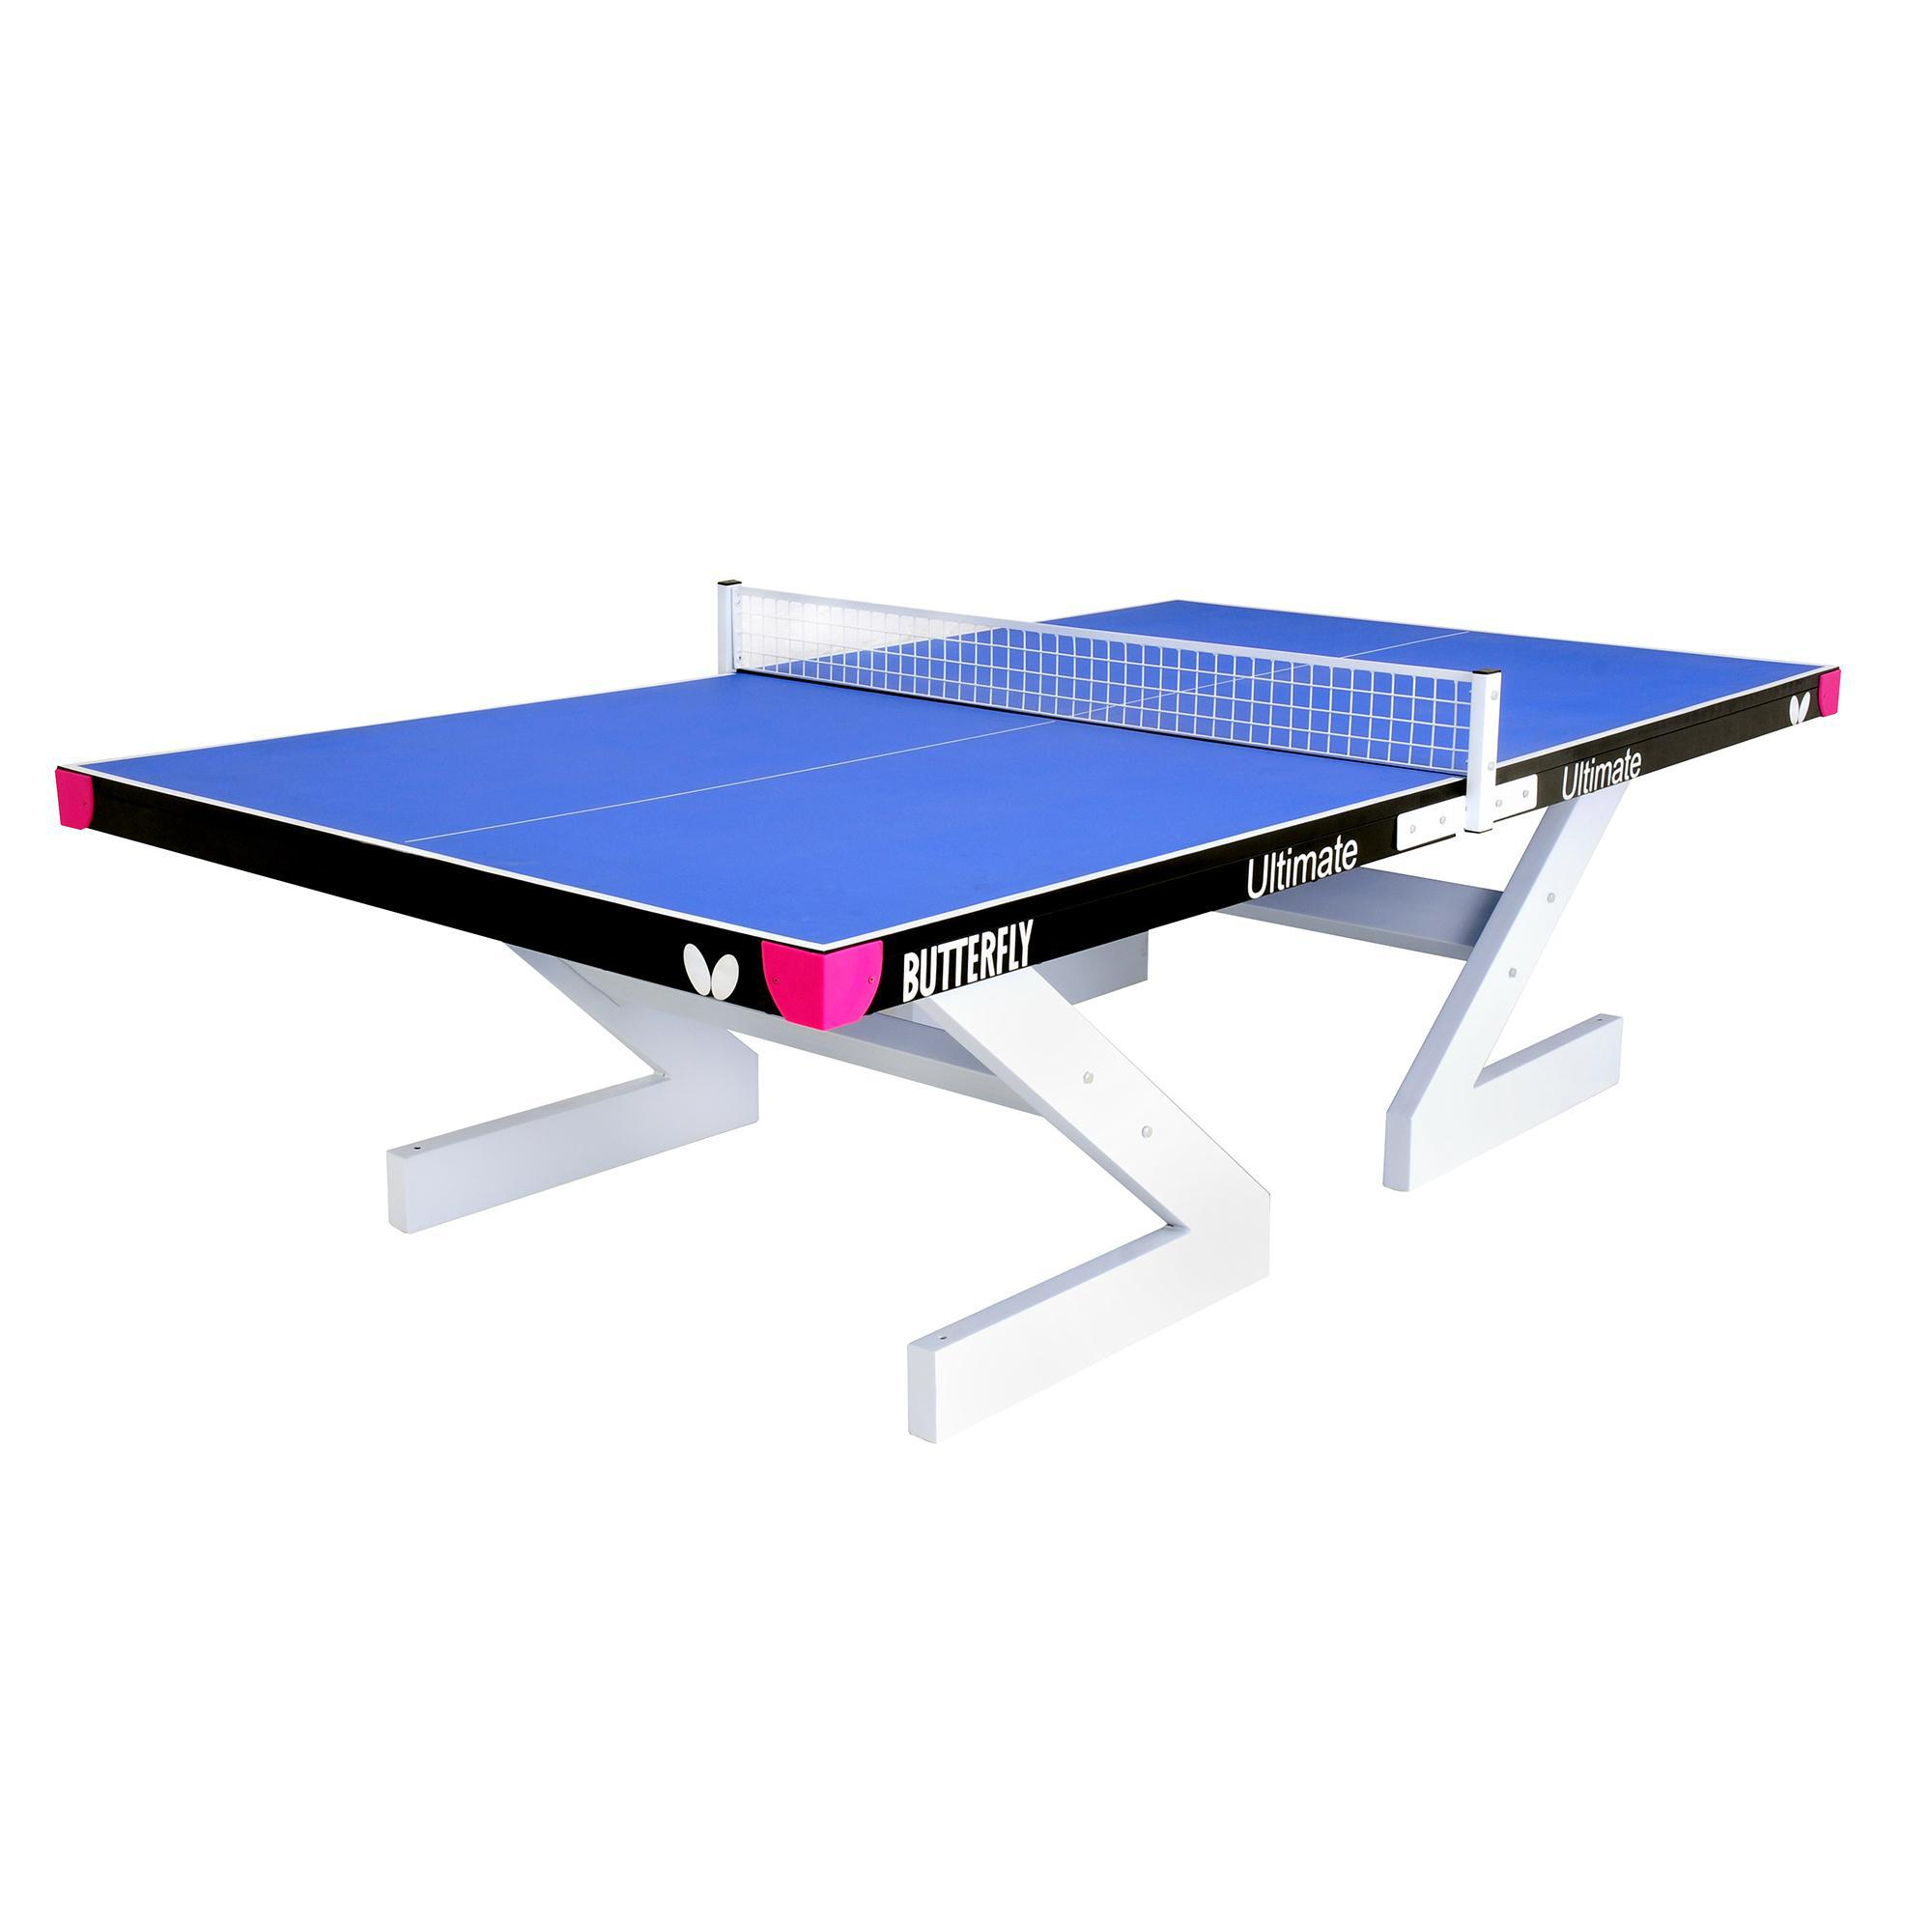 Butterfly ultimate 18mm outdoor table tennis table blue - Weatherproof table tennis table ...